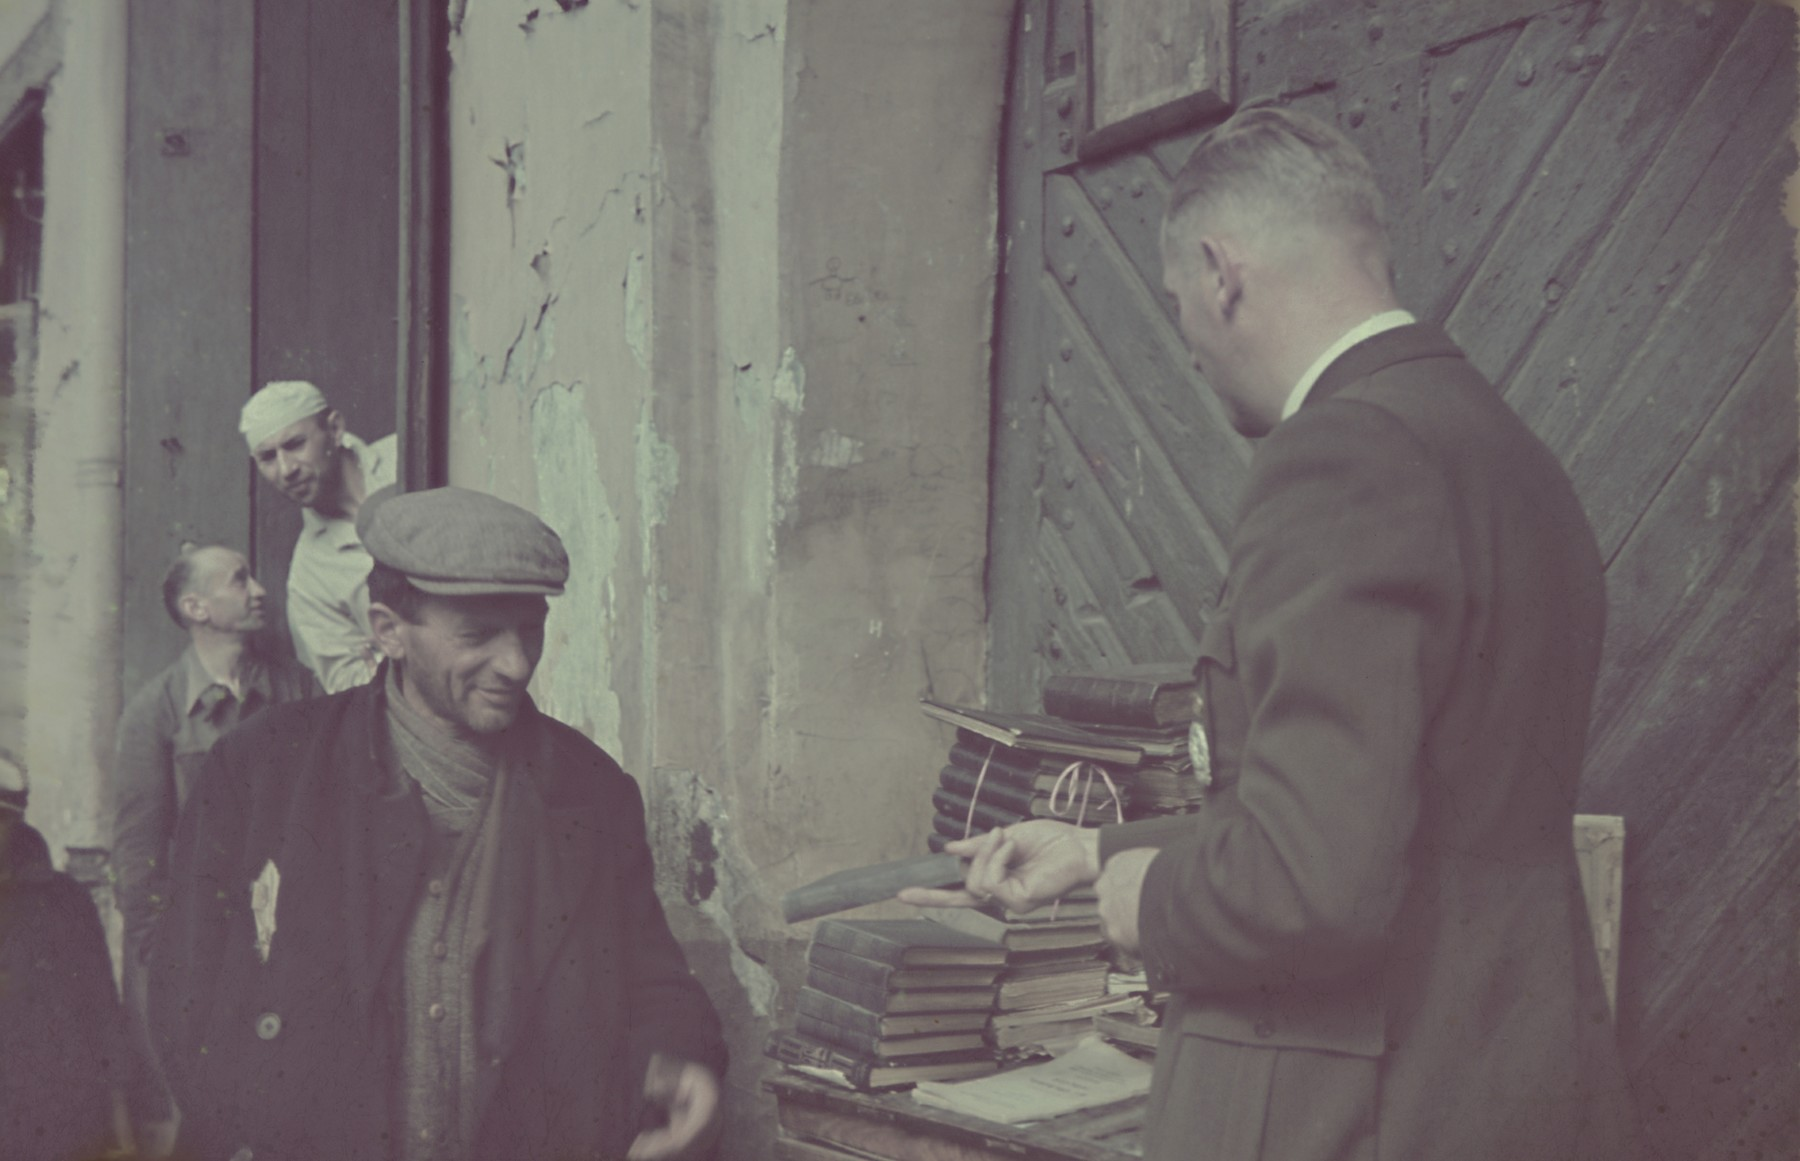 Hans Biebow purchases books from a street vendor in the Lodz ghetto.